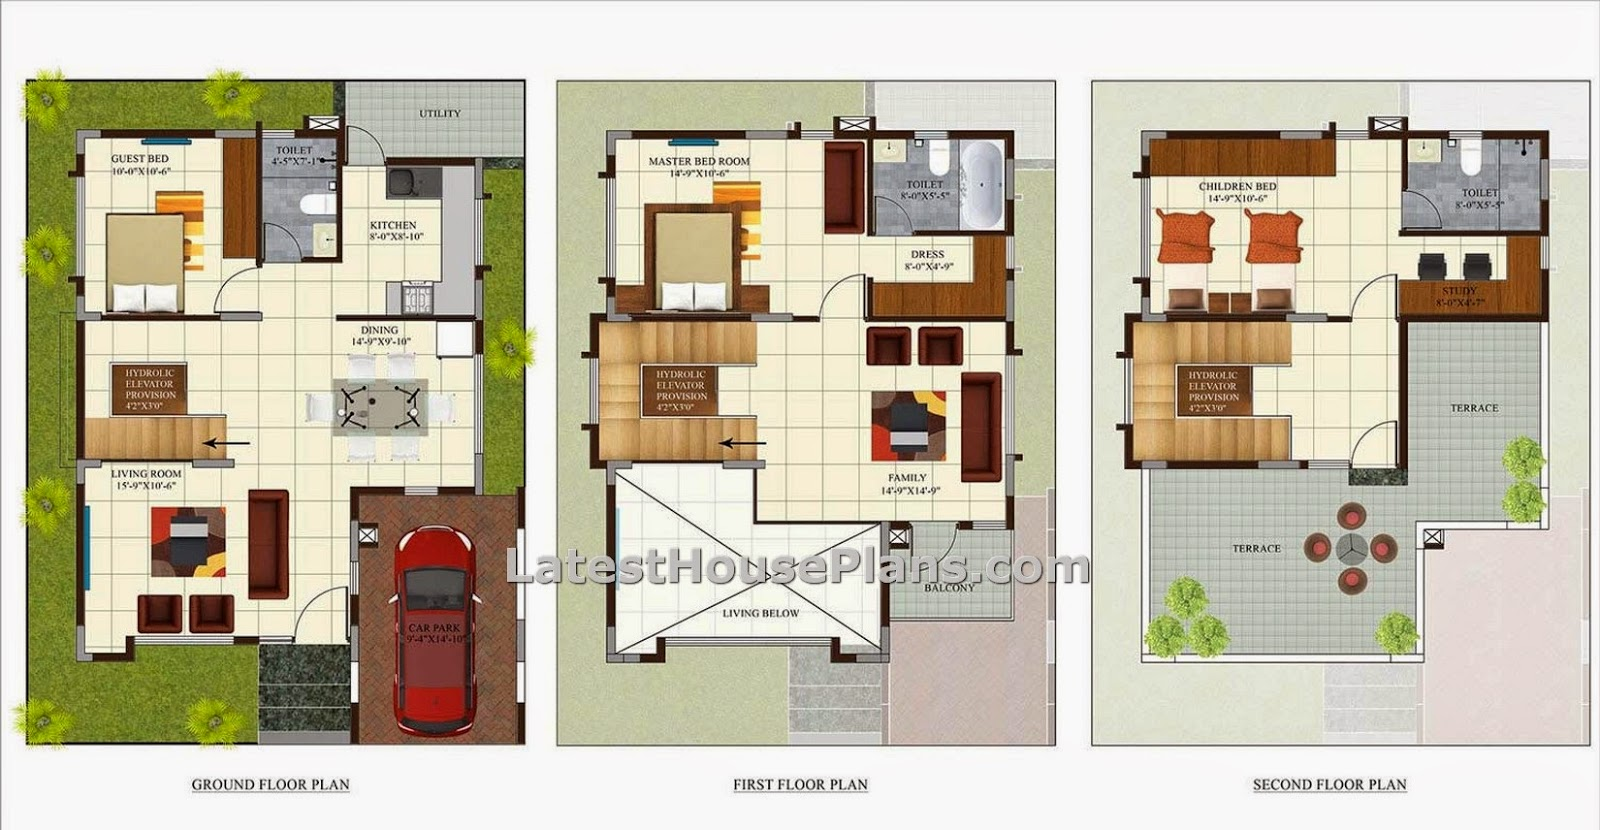 Three bedroom luxury villa house plan in area of 1850 sq ft